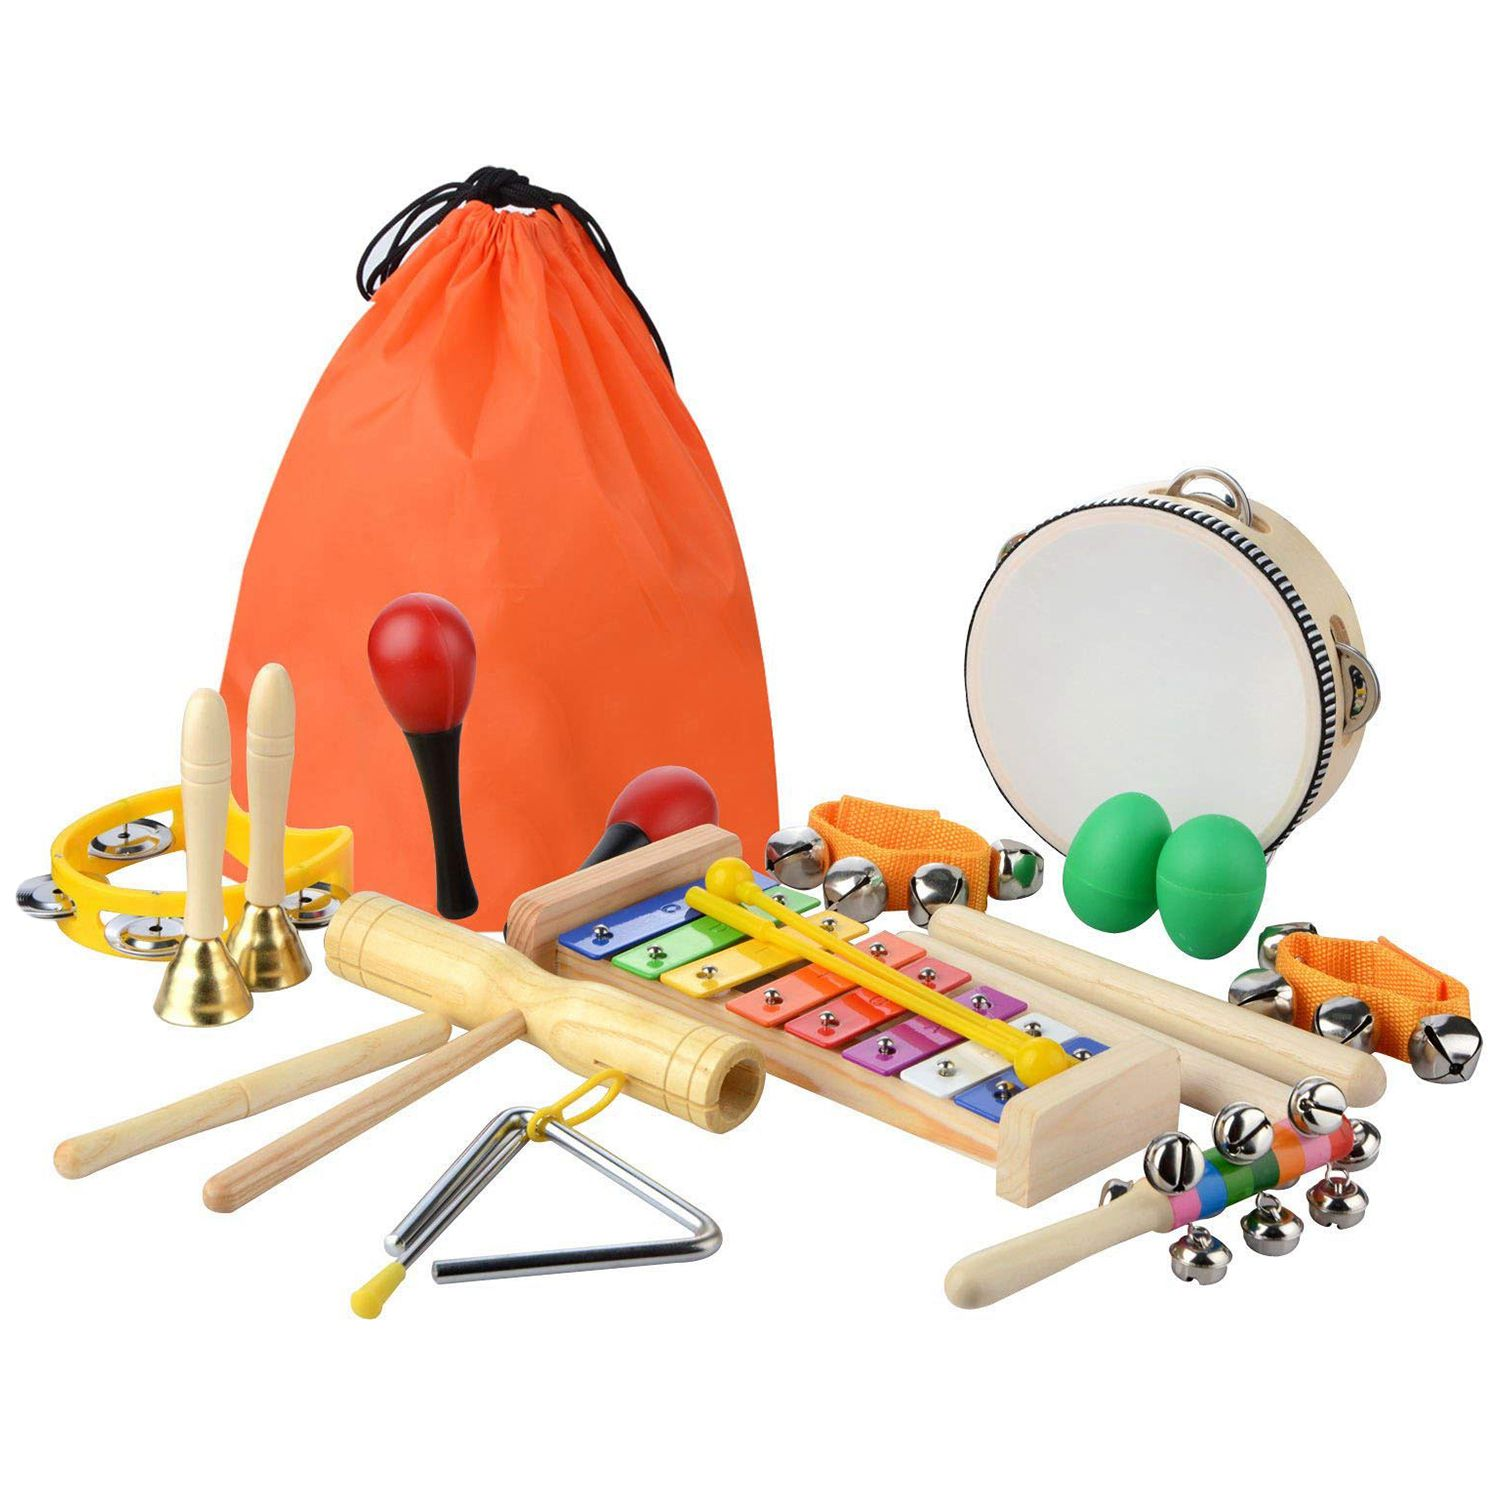 20 Pcs Toddler & Baby Musical Instruments Set - Percussion Toy Fun Toddlers Toys Wooden Xylophone Glockenspiel Toy Rhythm Band